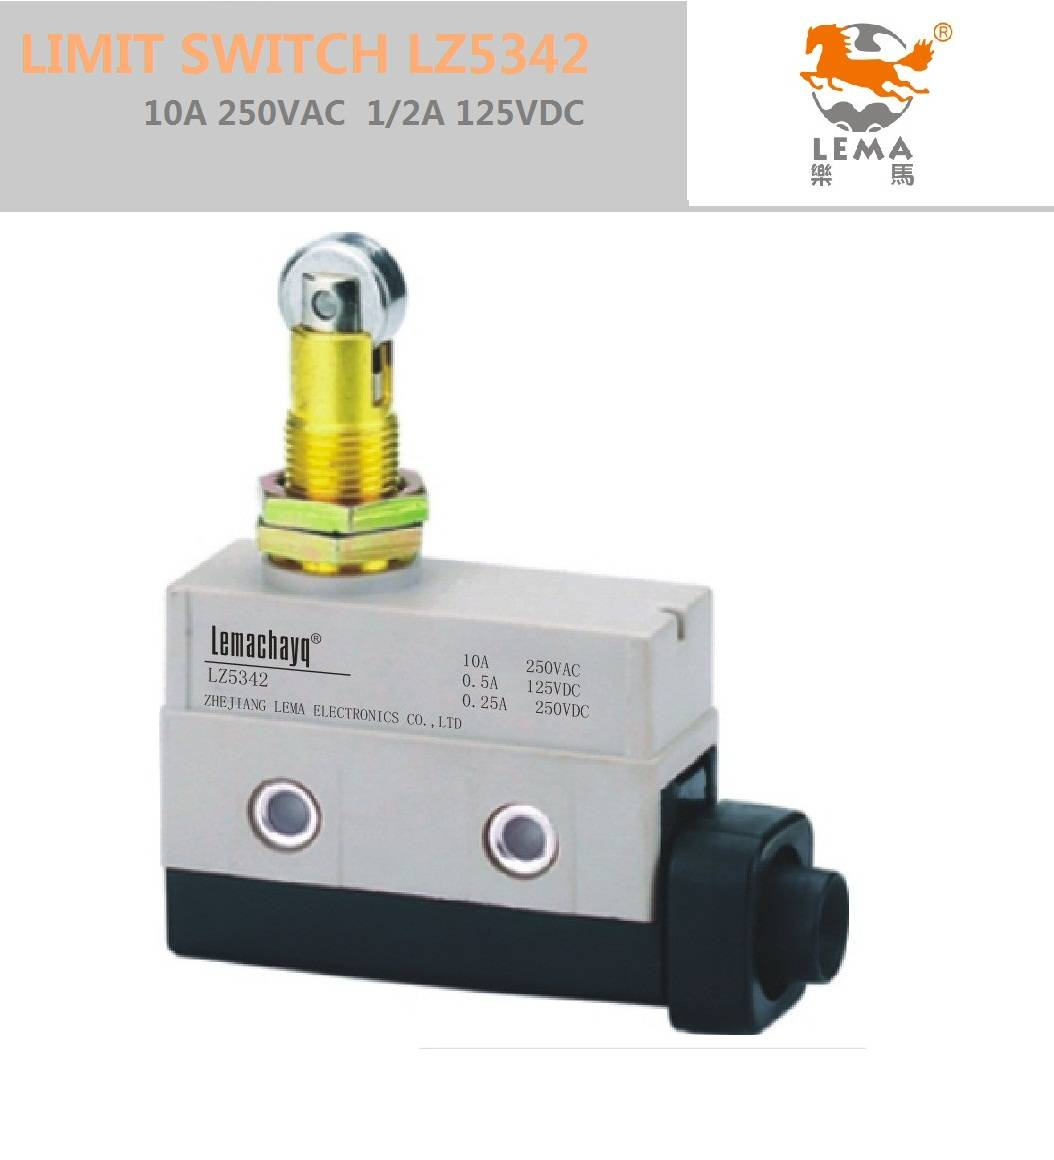 LZ5342 General purpose snap action switch Limit Switch Micro Switch